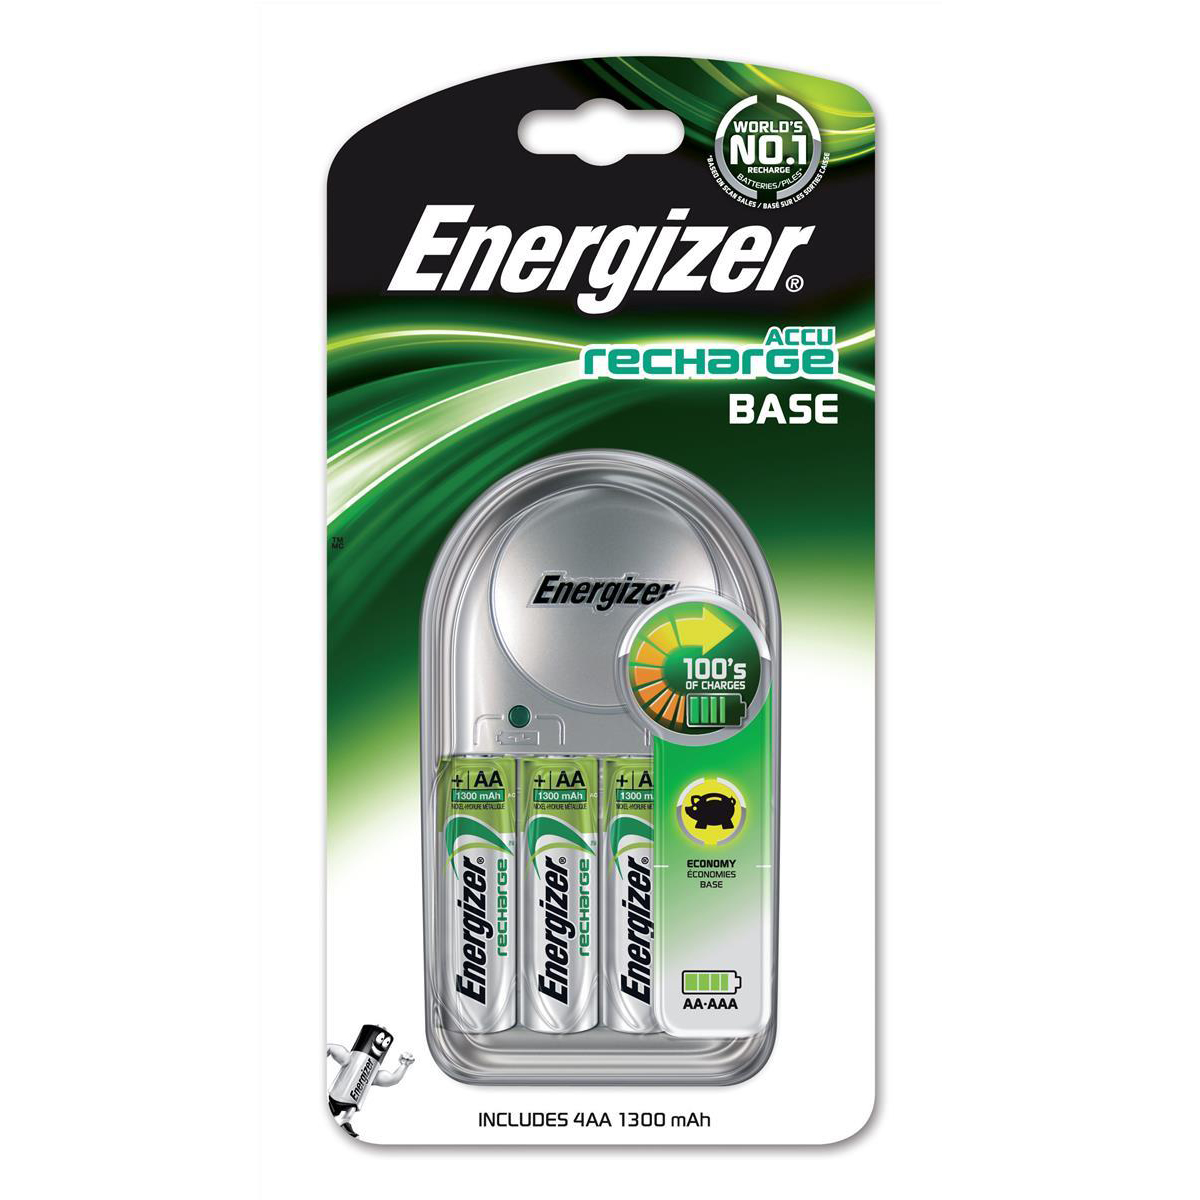 Image for Energizer Value Battery Charger CHVC3 for AA AAA Includes 4xAA 1300mAh Batteries Ref 633157